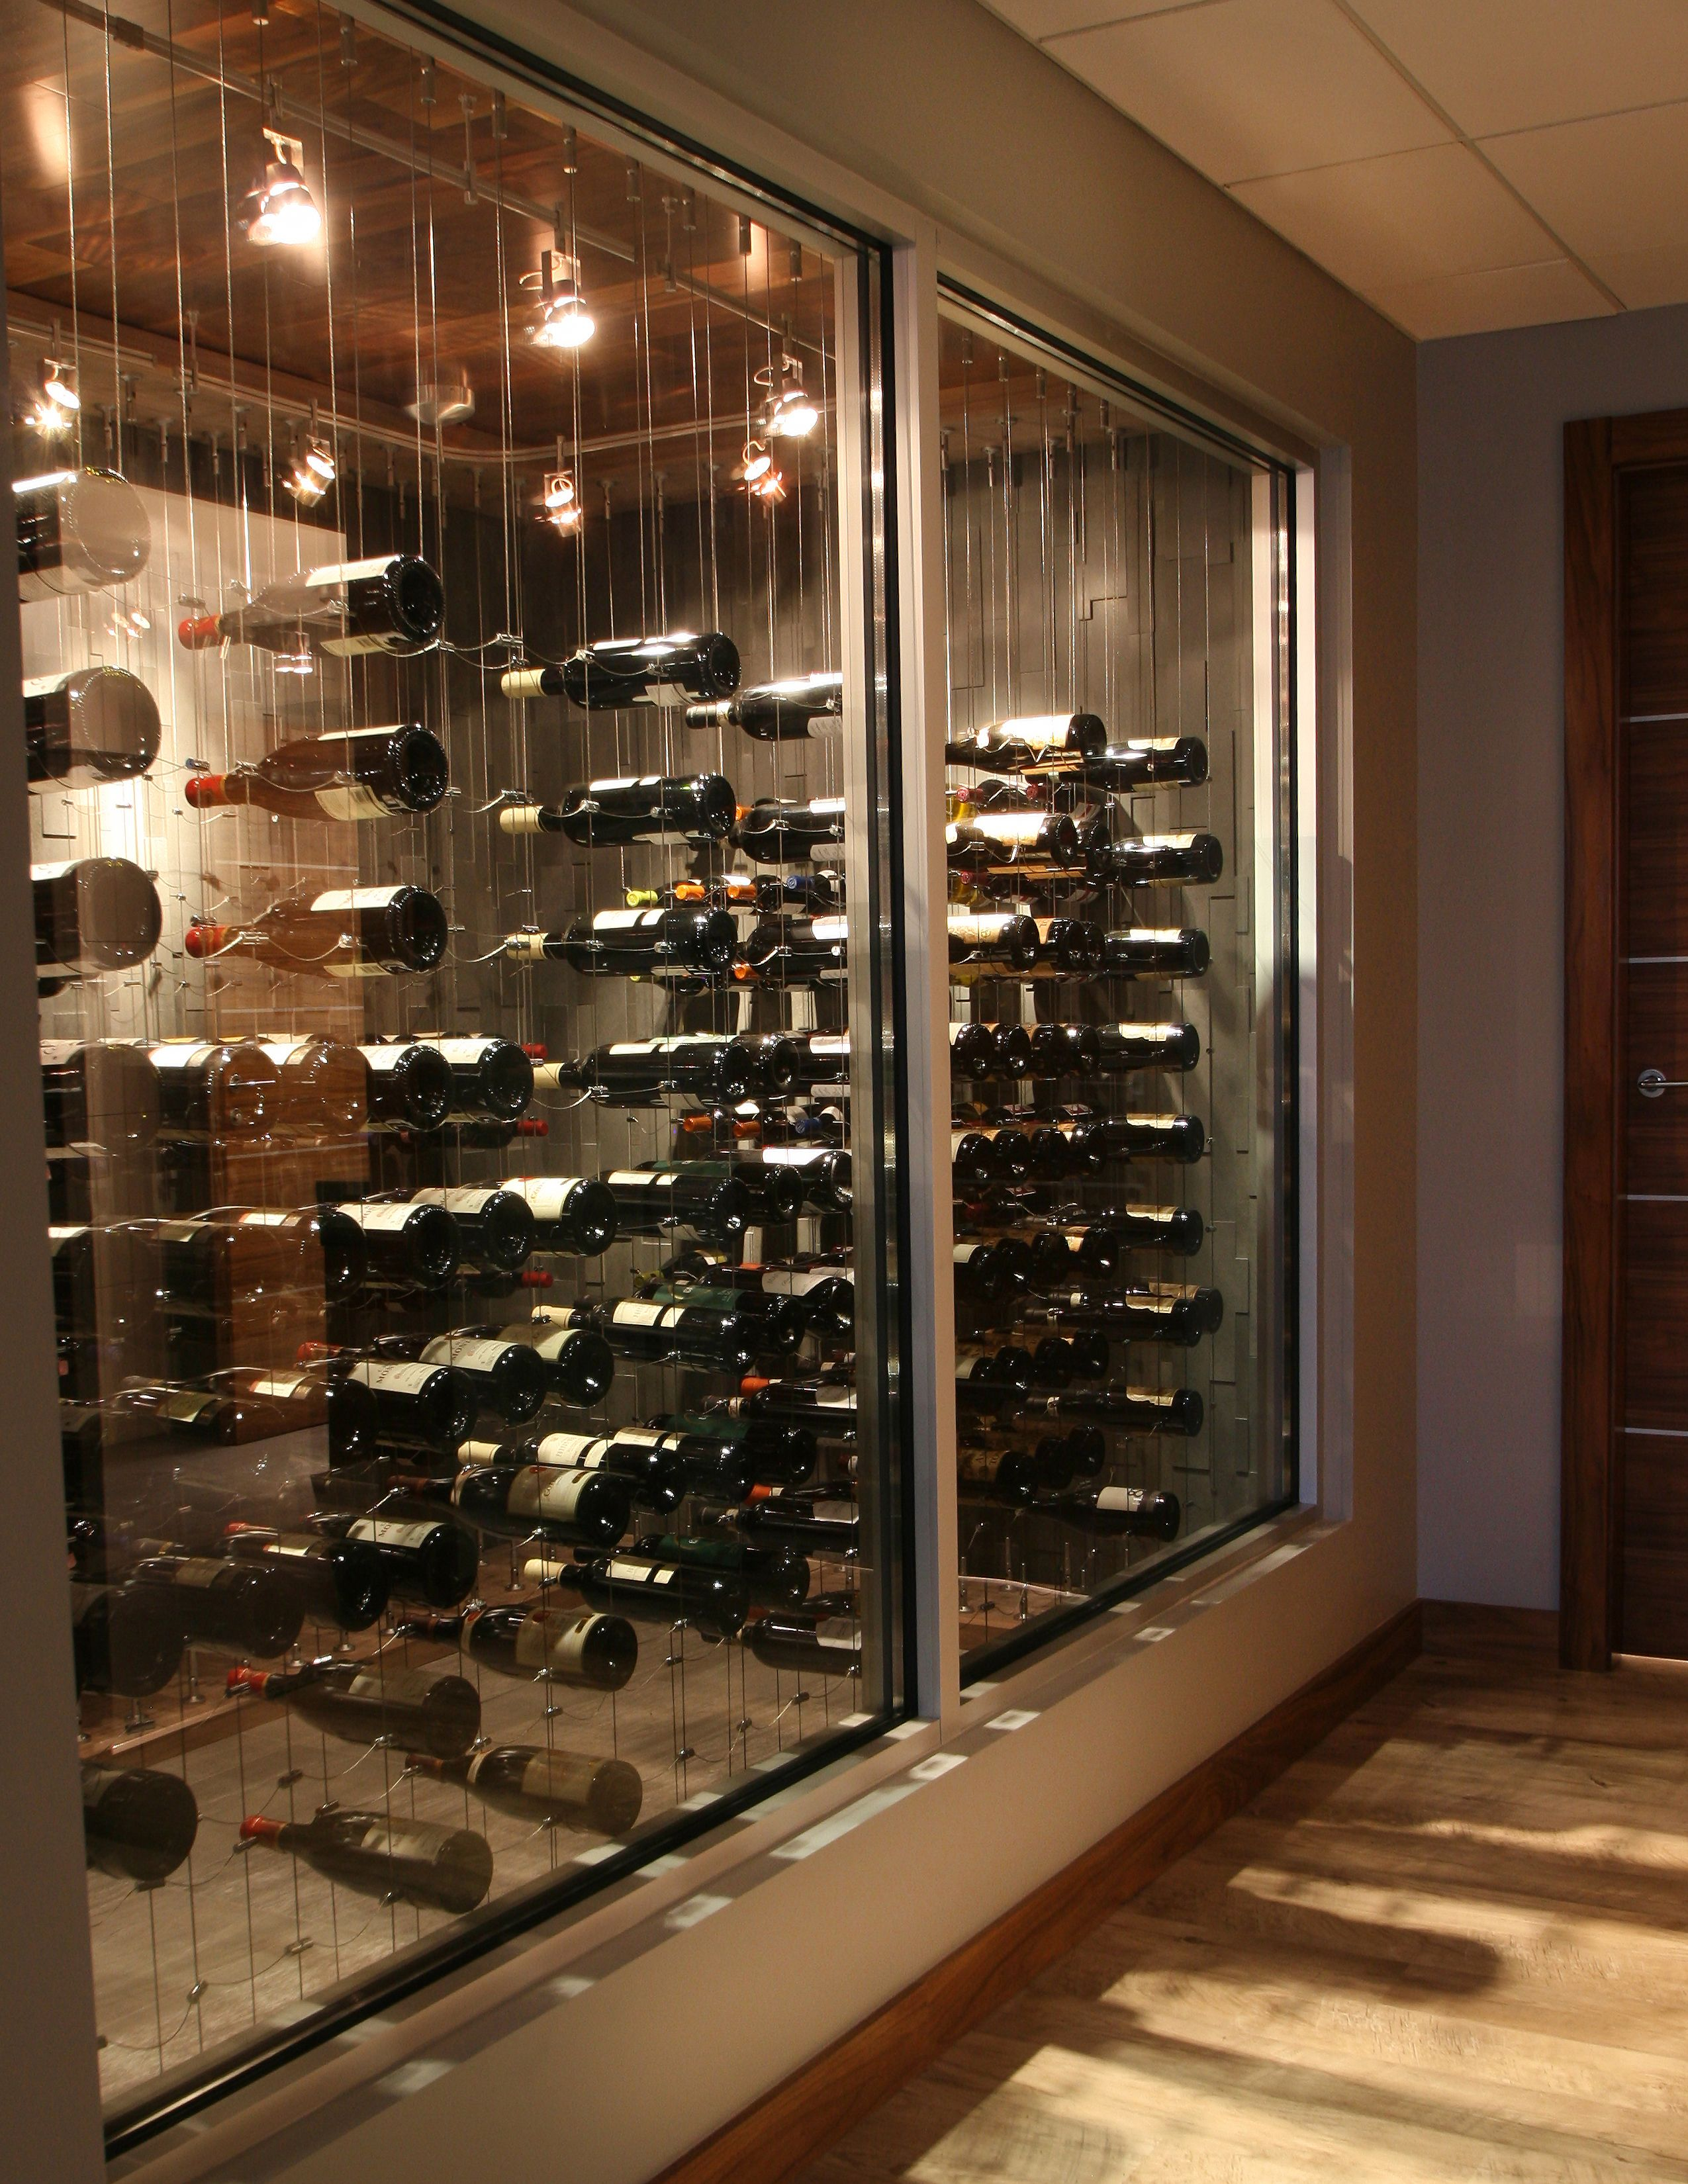 Hallway View Of Glass Enclosed Cable Wine System Custom Wine Cellar Wine Cellar Design Home Wine Cellars Wine Cellar Racks